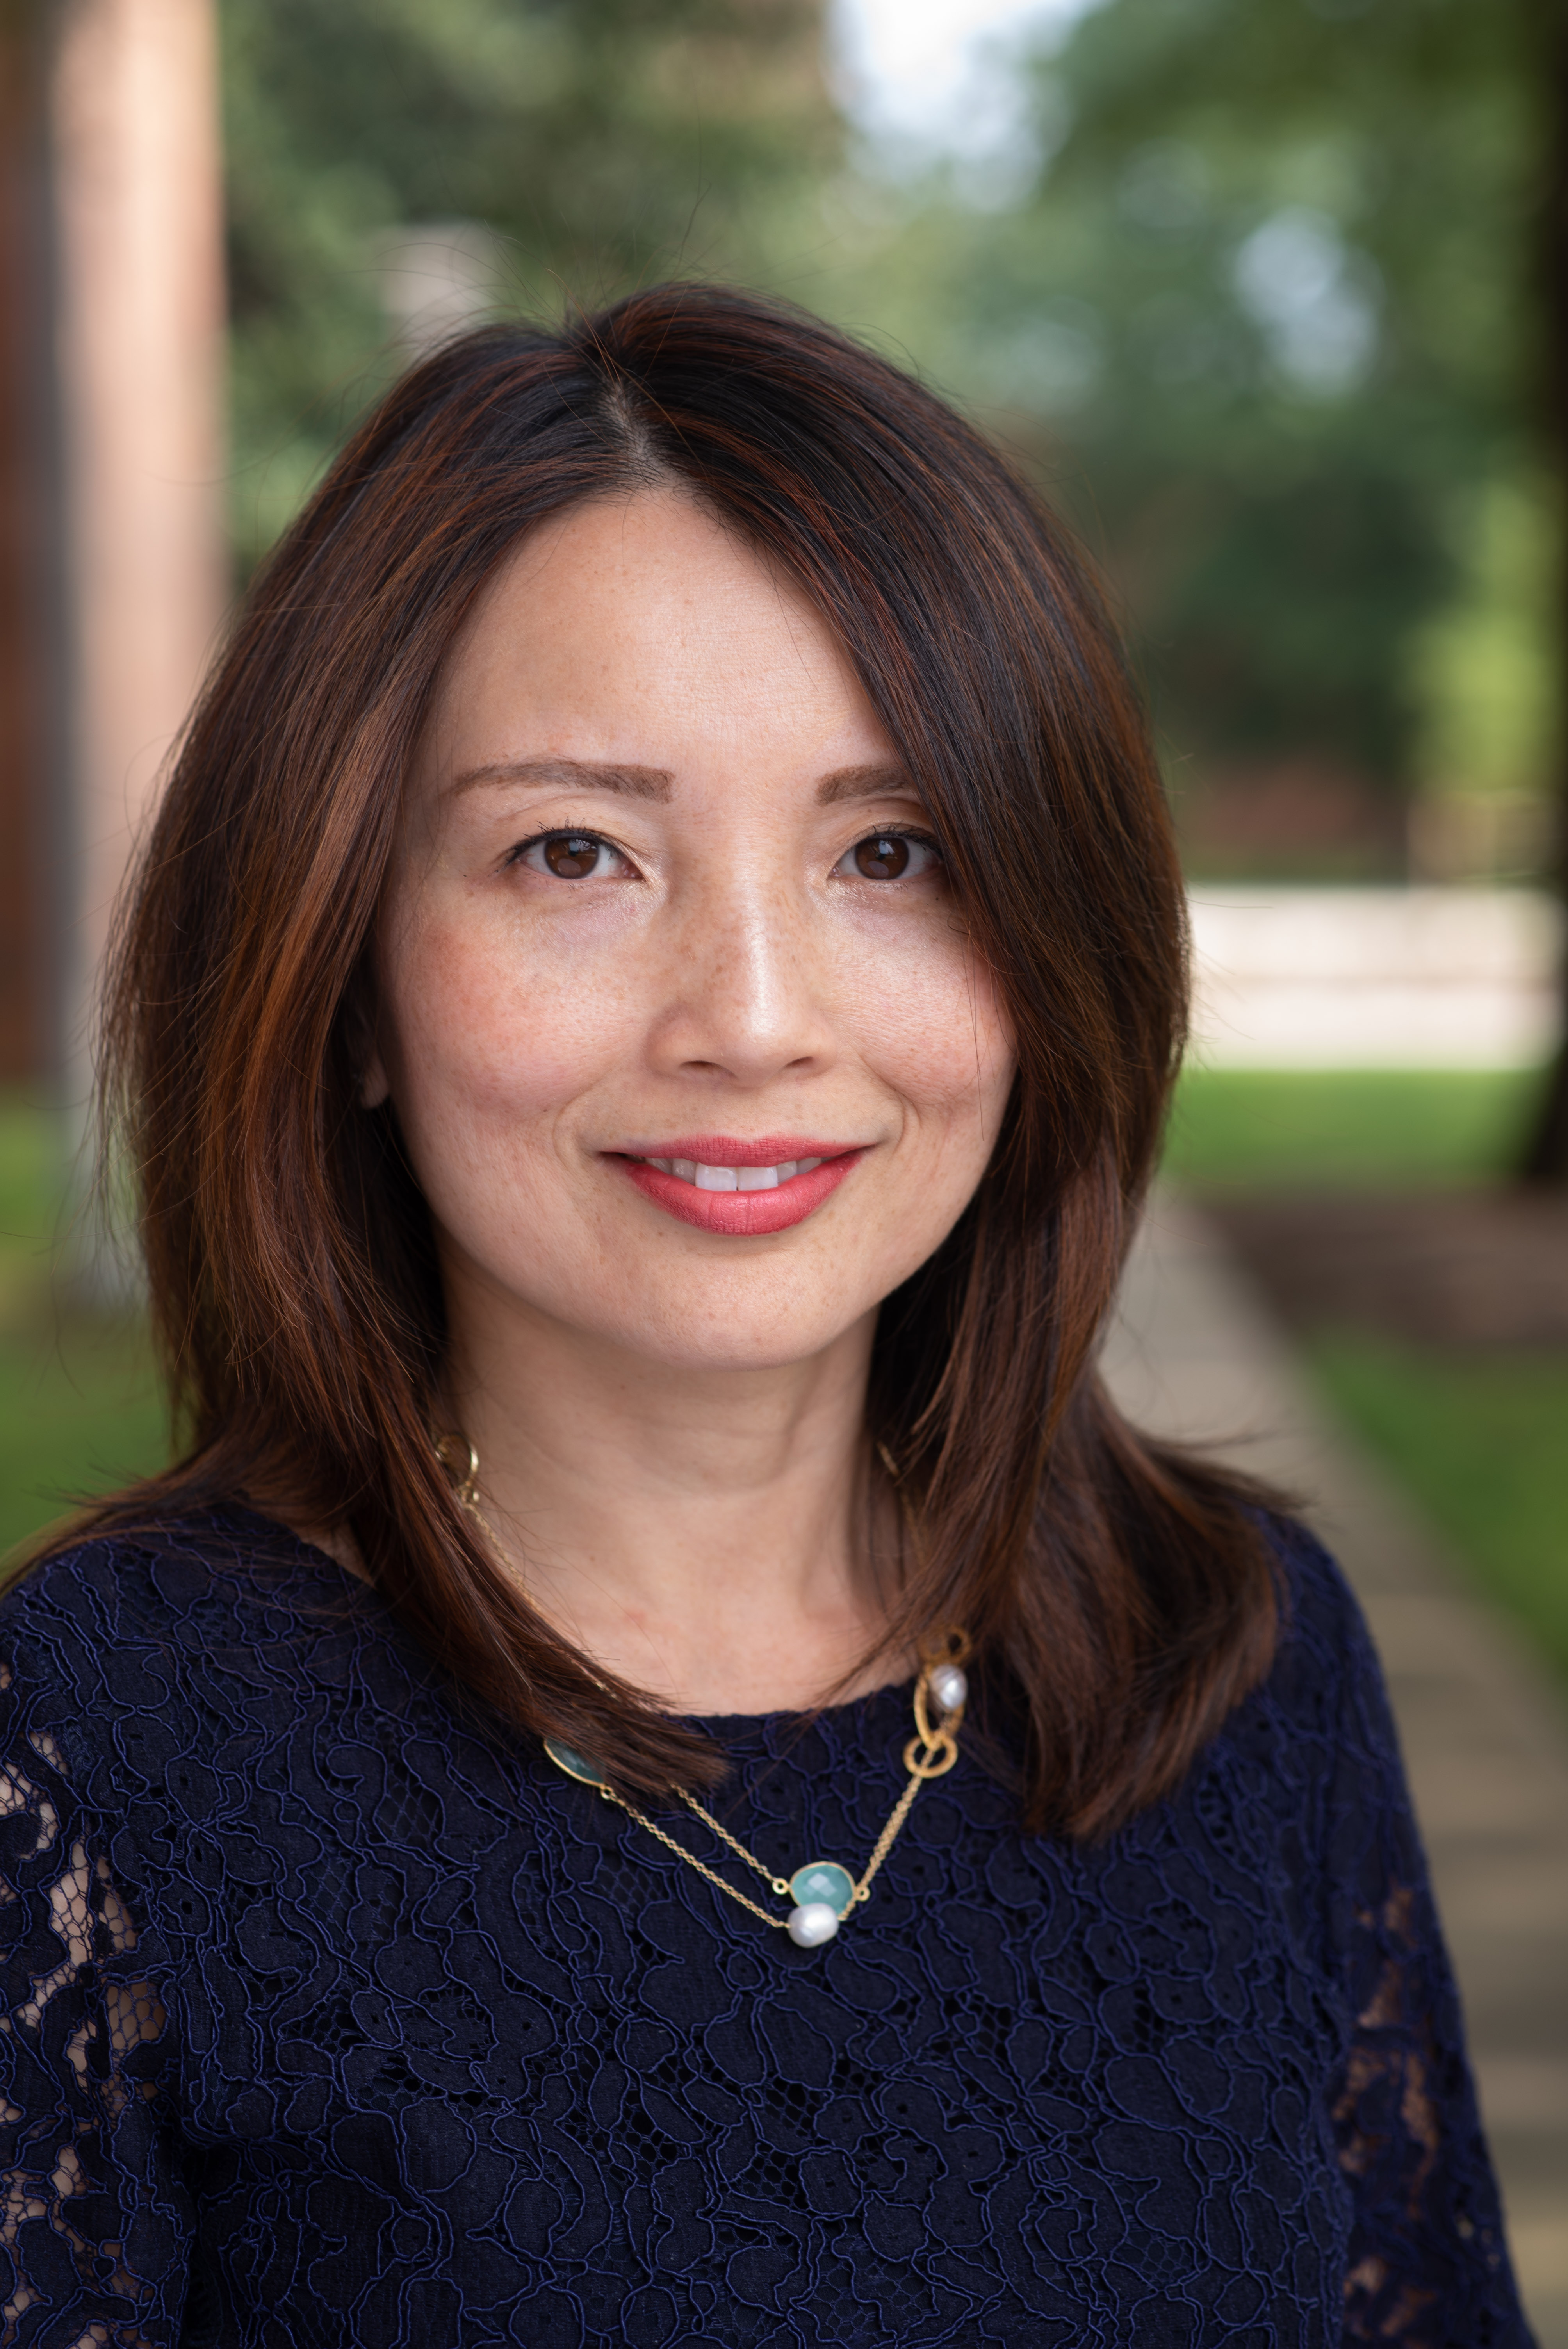 Dr. Cheah speaks to The Washington Post about attacks on Asian Americans